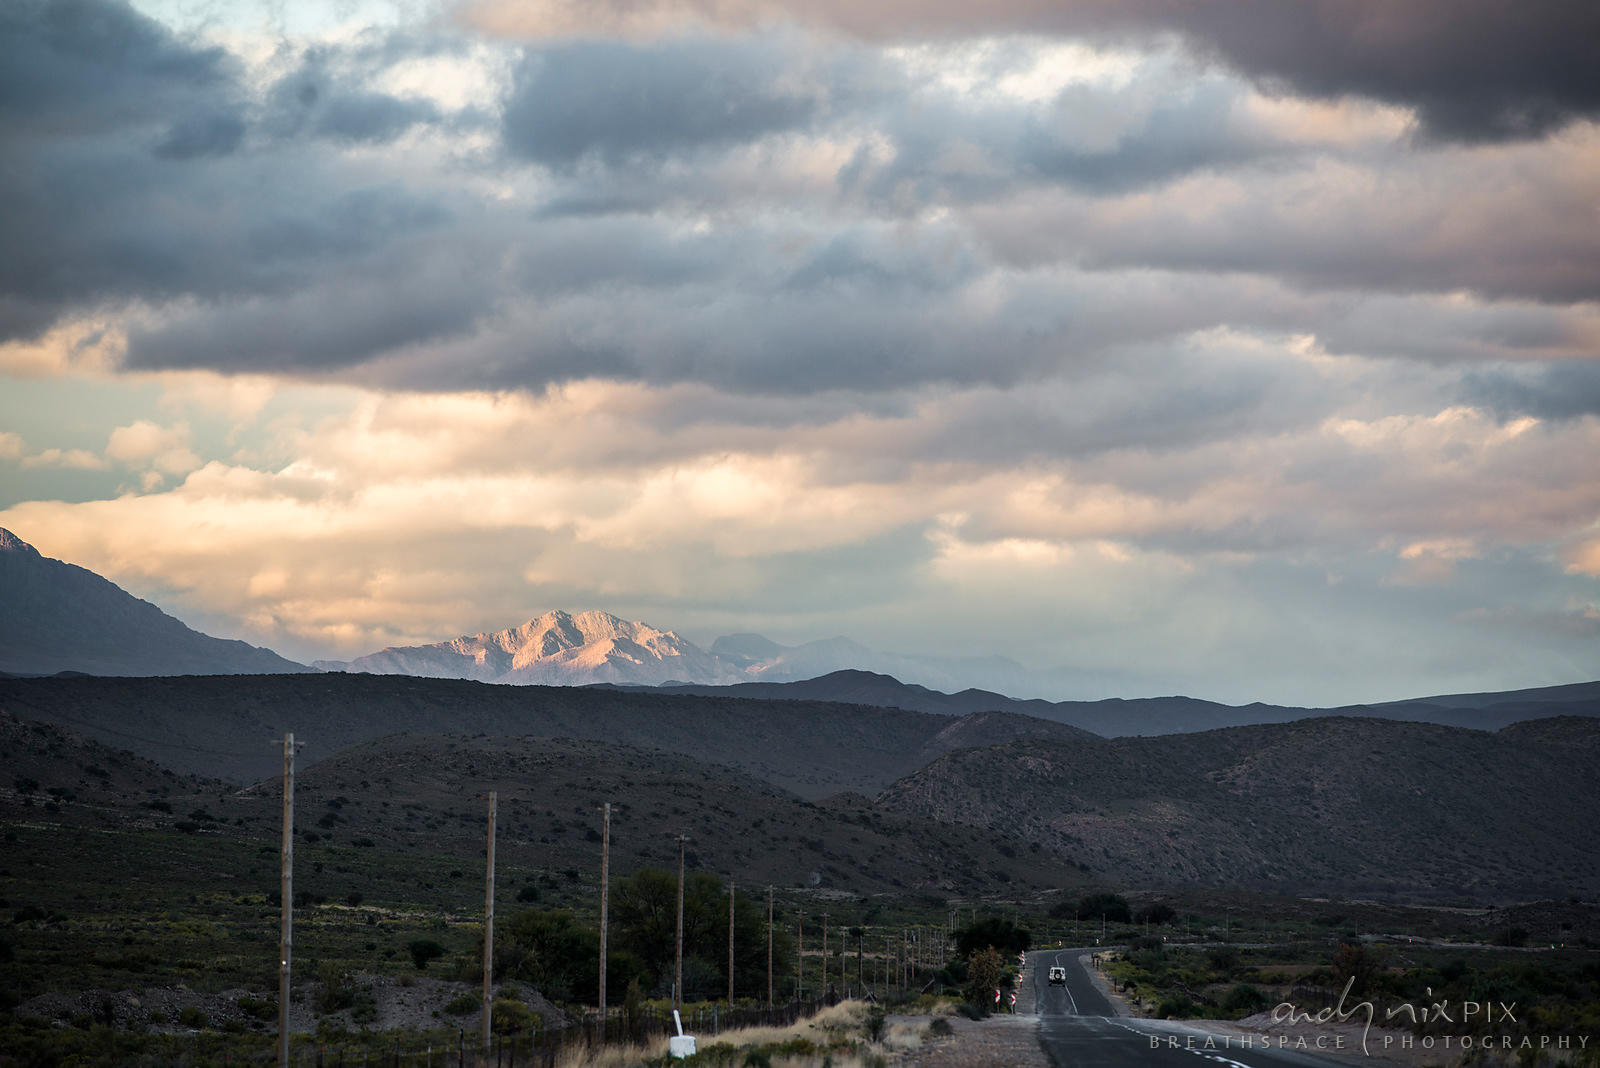 Sunlight on mountain in distance, car on road in foreground, cloudy sky at sunset